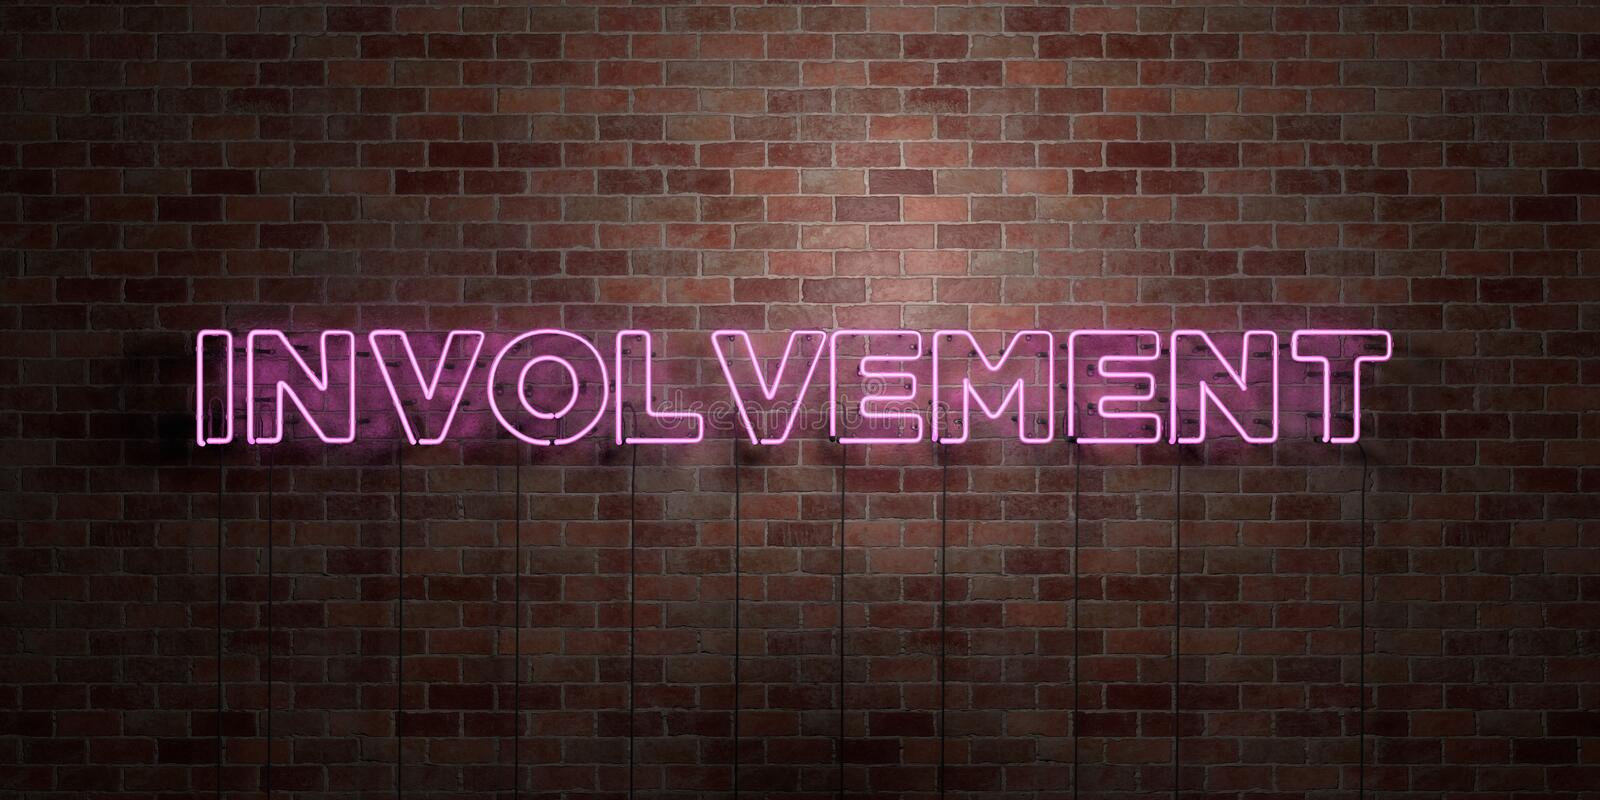 INVOLVEMENT - fluorescent Neon tube Sign on brickwork - Front view - 3D rendered royalty free stock picture. Can be used for online banner ads and direct vector illustration